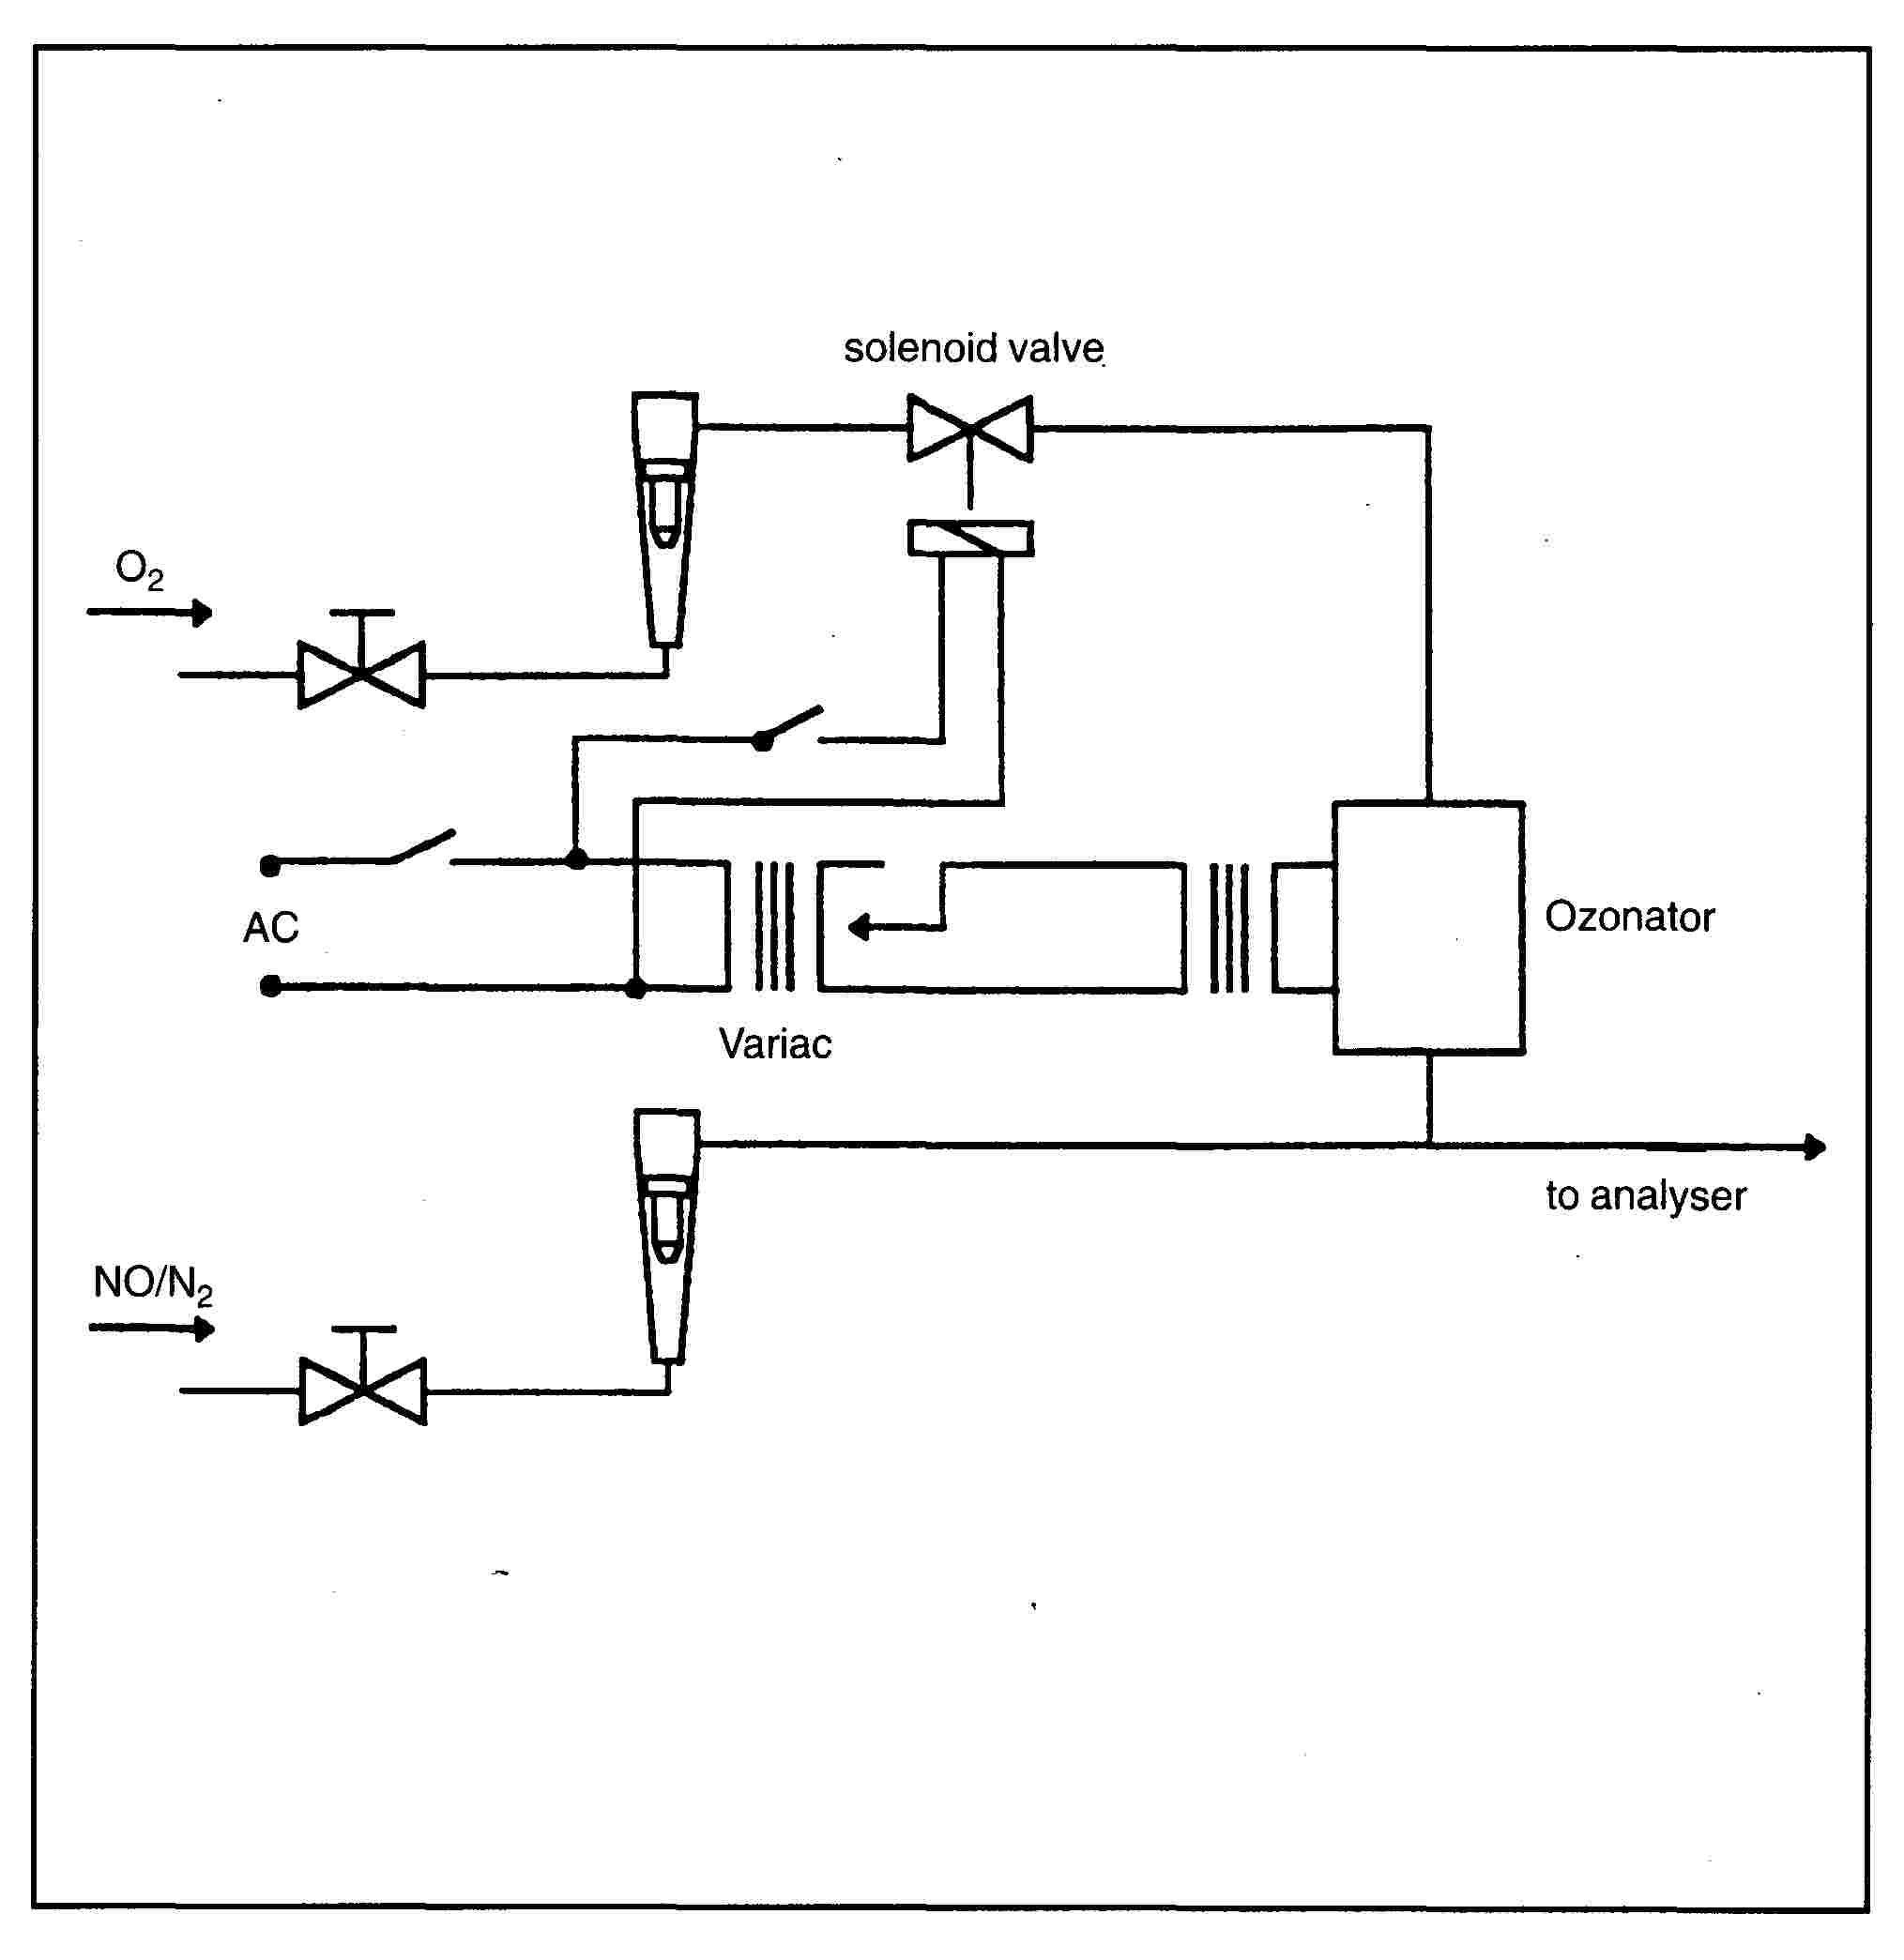 Eur Lex 01997l0068 20130110 En Cat 963 Engine Wiring Diagram Figure 1 Schematic Of No2 Converter Efficiency Device